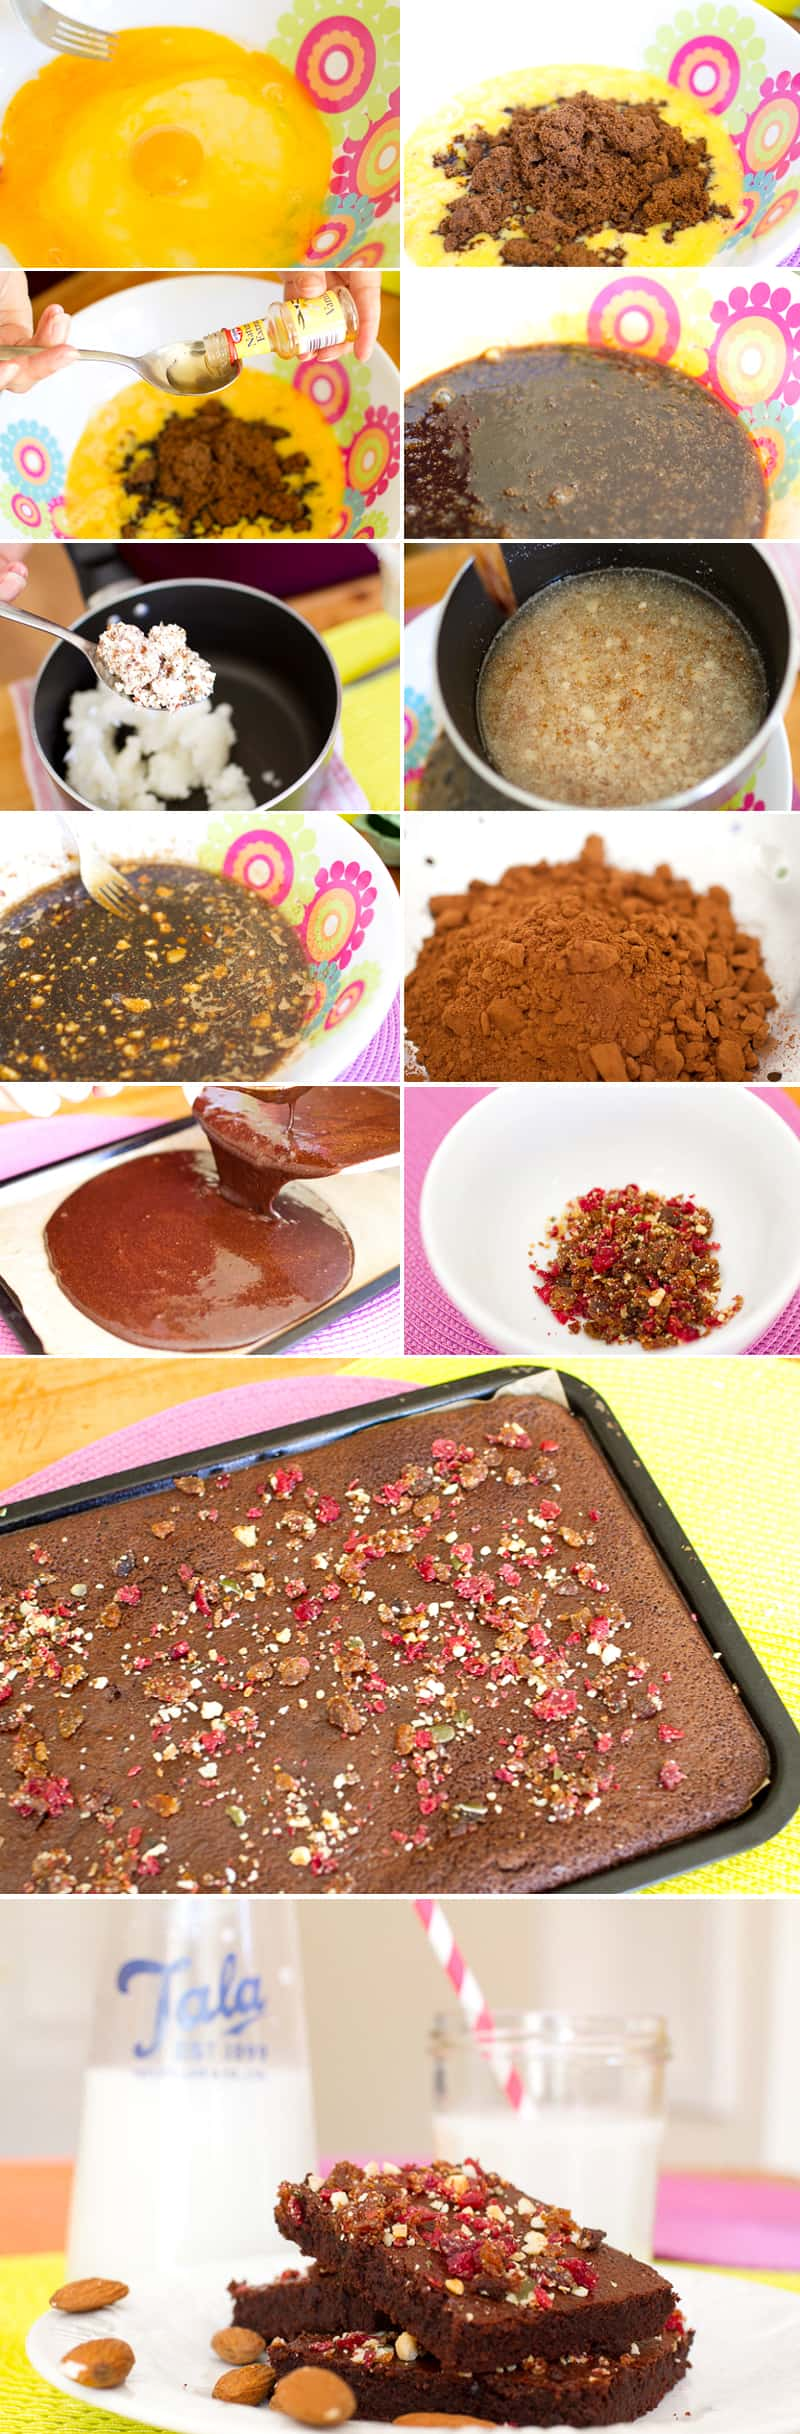 How to Almond Pulp Brownies